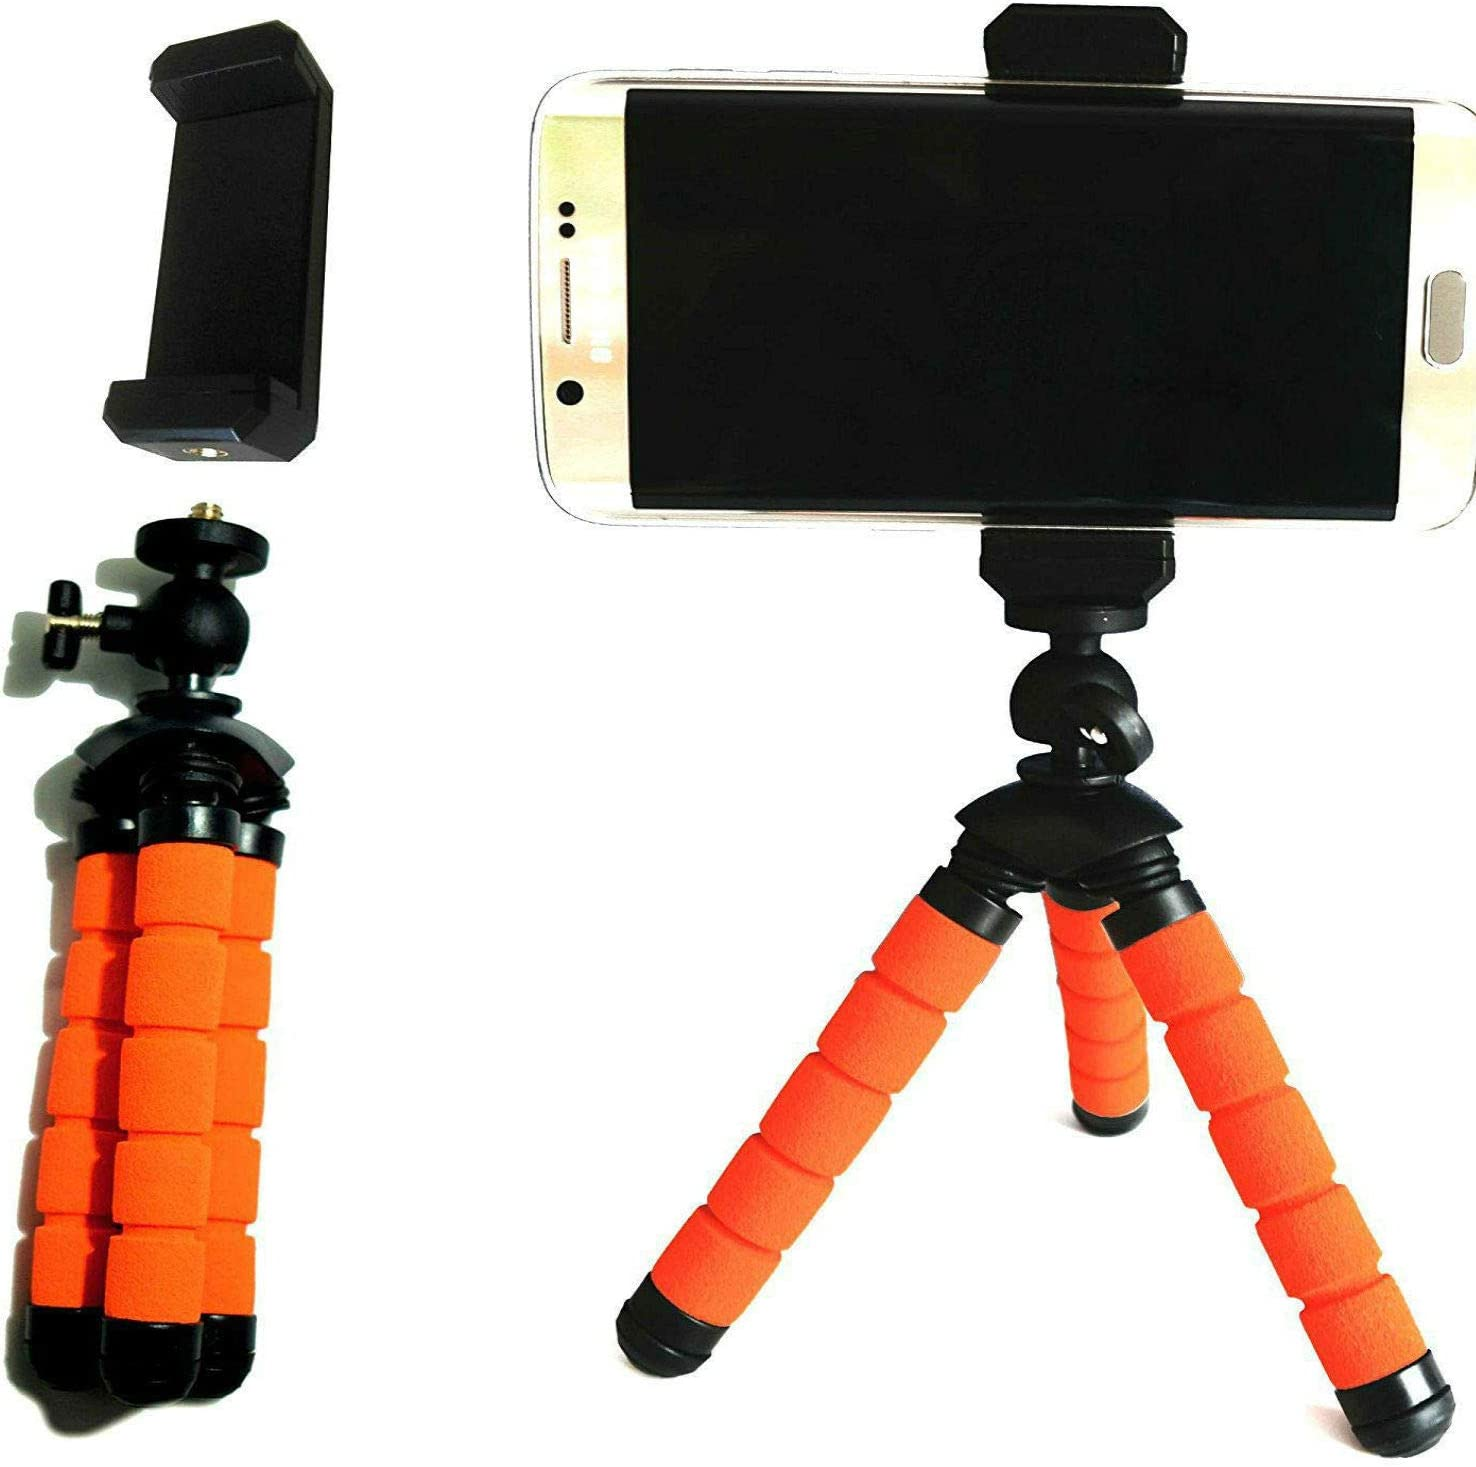 TronicXL Tripod 240S - Trípode Flexible para Smartphone y Tablet para Apple iPhone, Samsung Galaxy y Huawei LG: Amazon.es: Electrónica